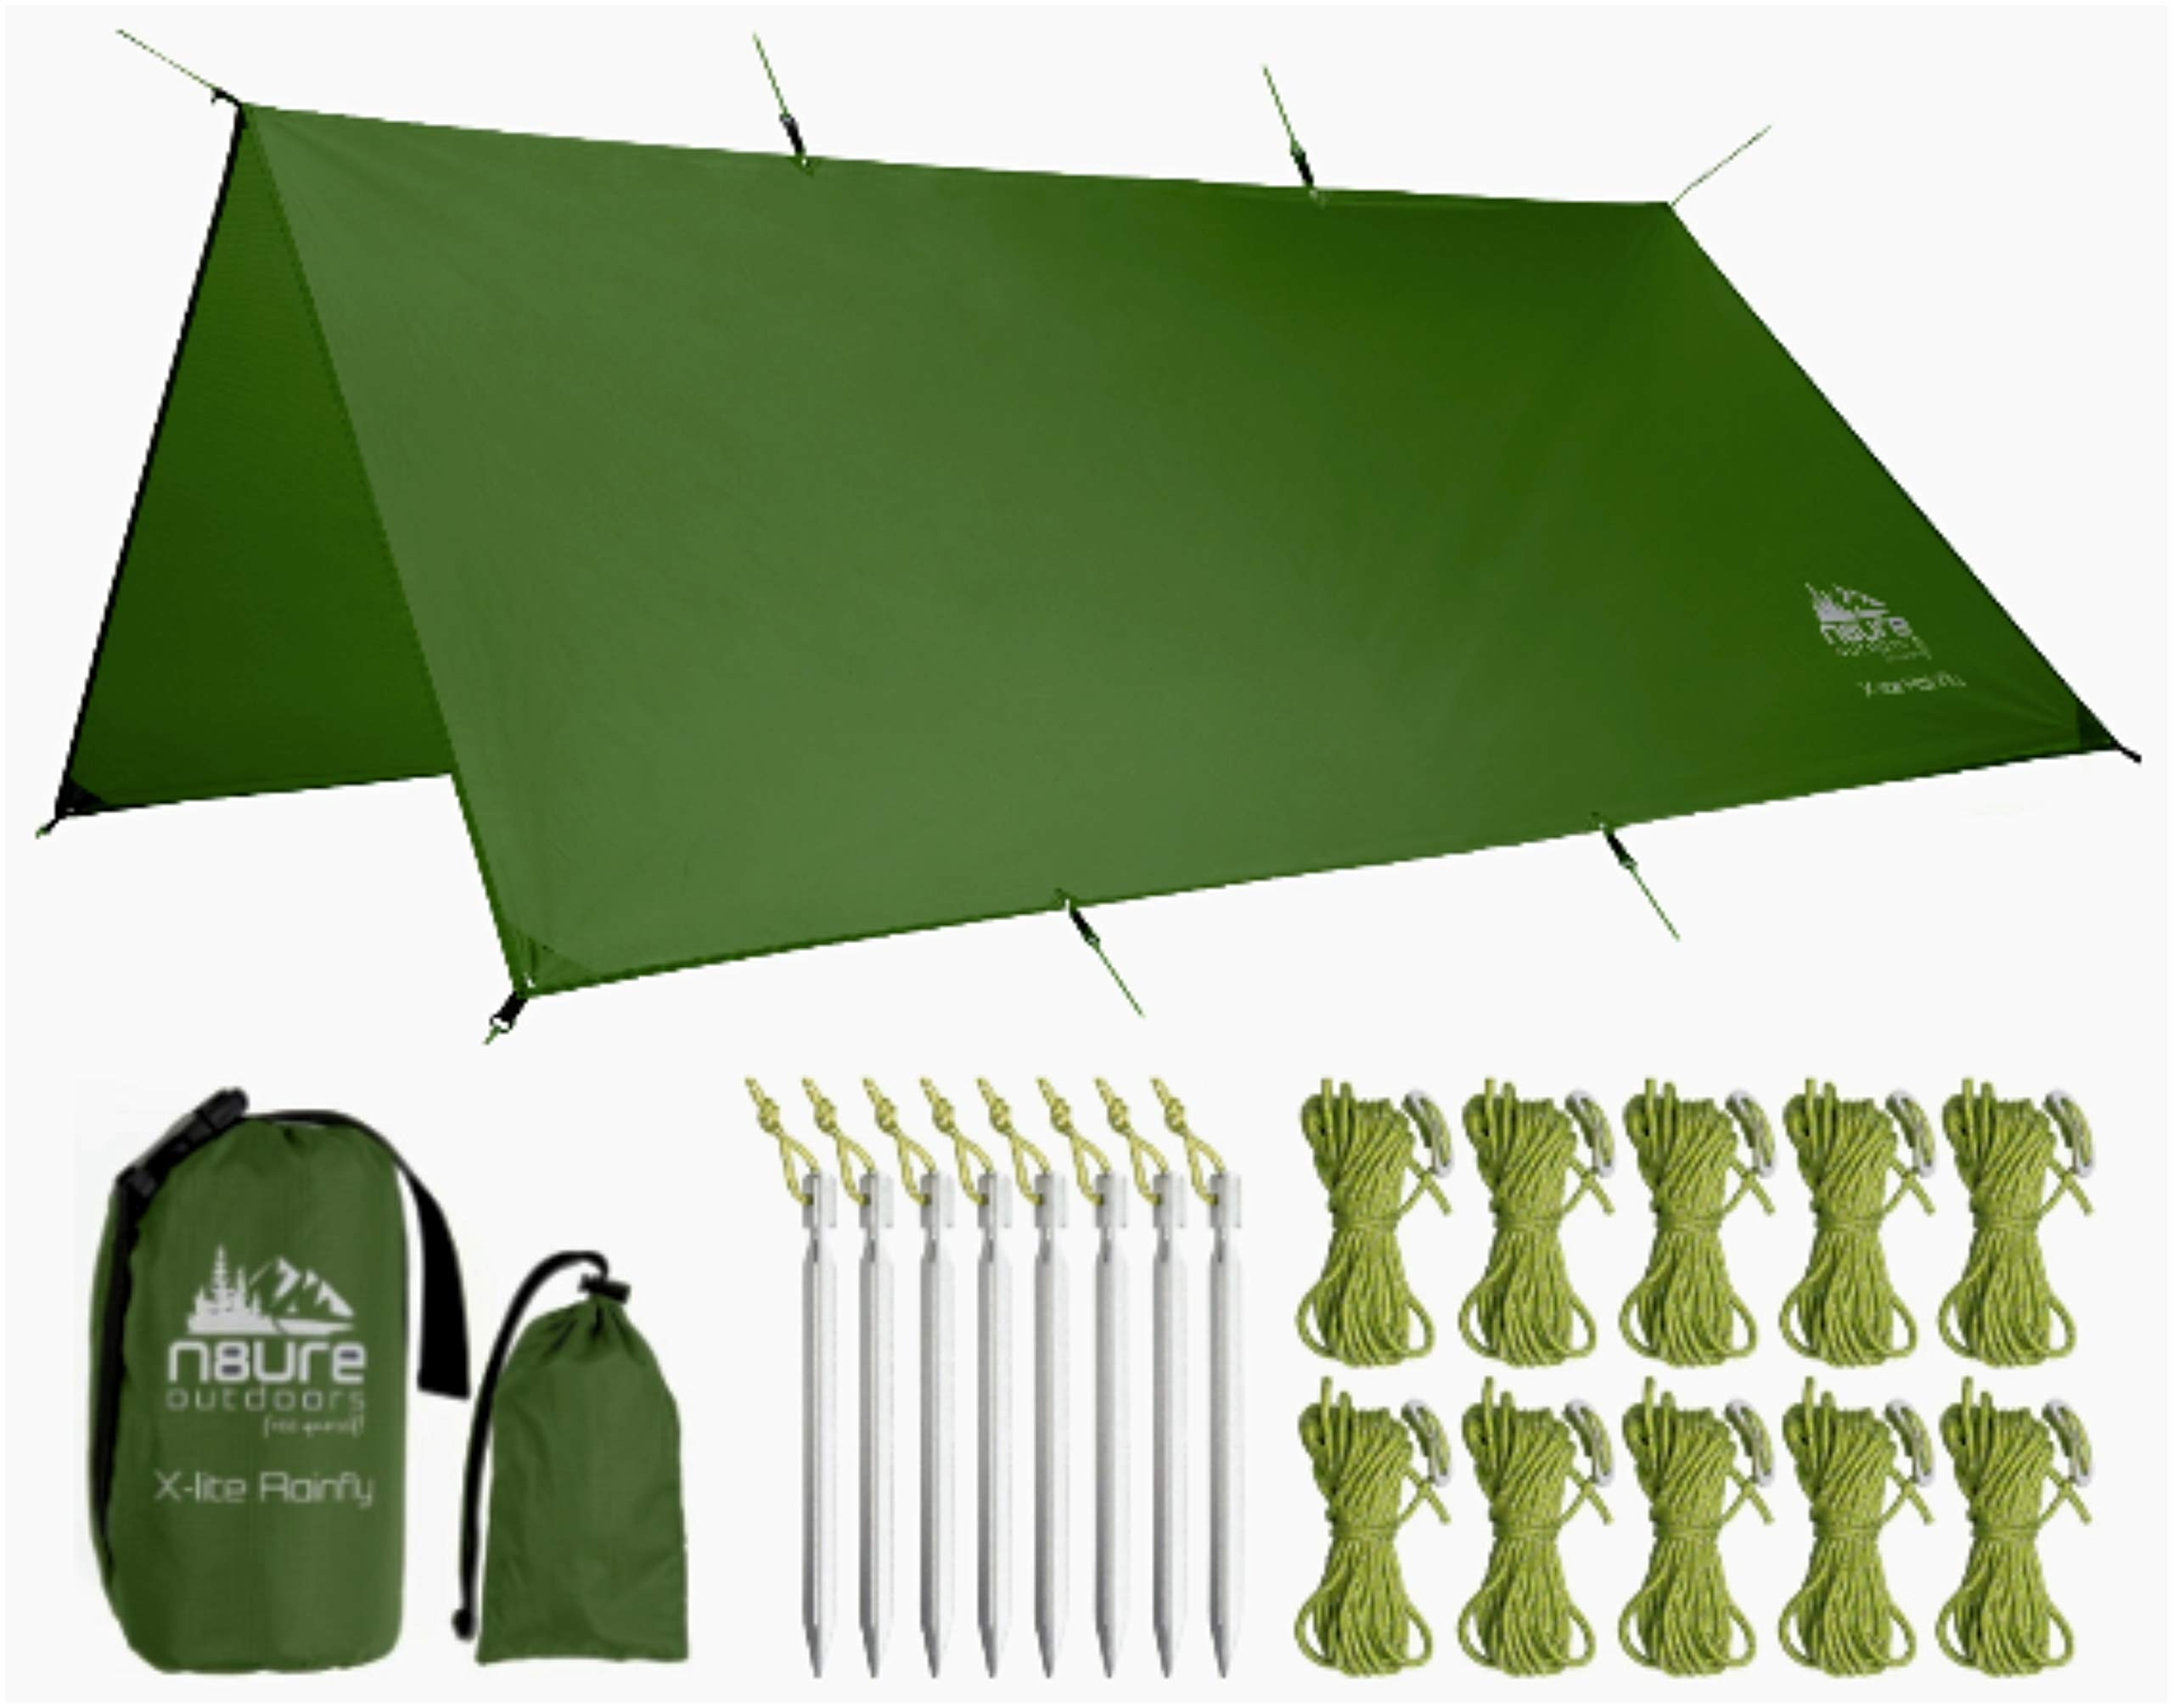 N8URE Outdoors Hammock Rainfly Tarp Premium 10x10' Ultralight Ripstop Nylon Waterproof Outdoor Tent Camping Shelter Backpack Hike Travel Bushcraft Survival Gear Includes Stakes Ropes by N8URE Outdoors